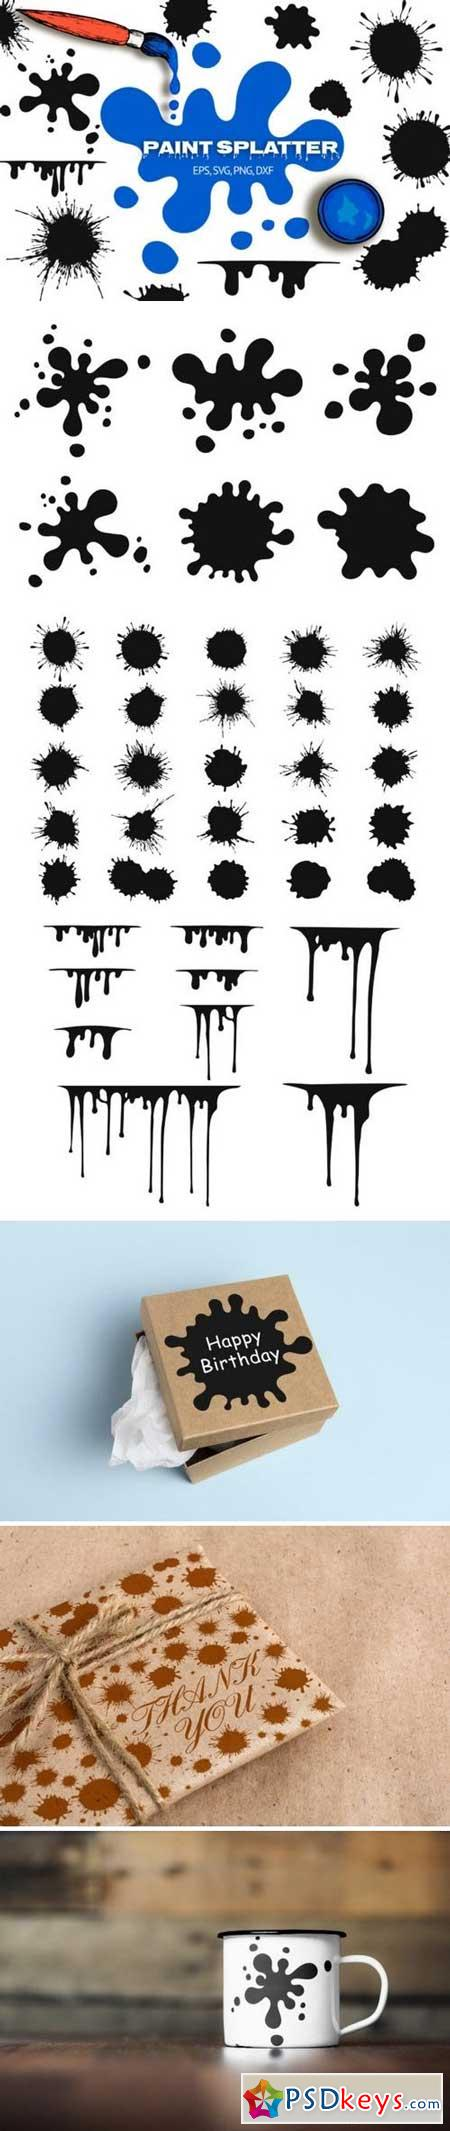 40 Hand Drawn Paint Splatters 866321